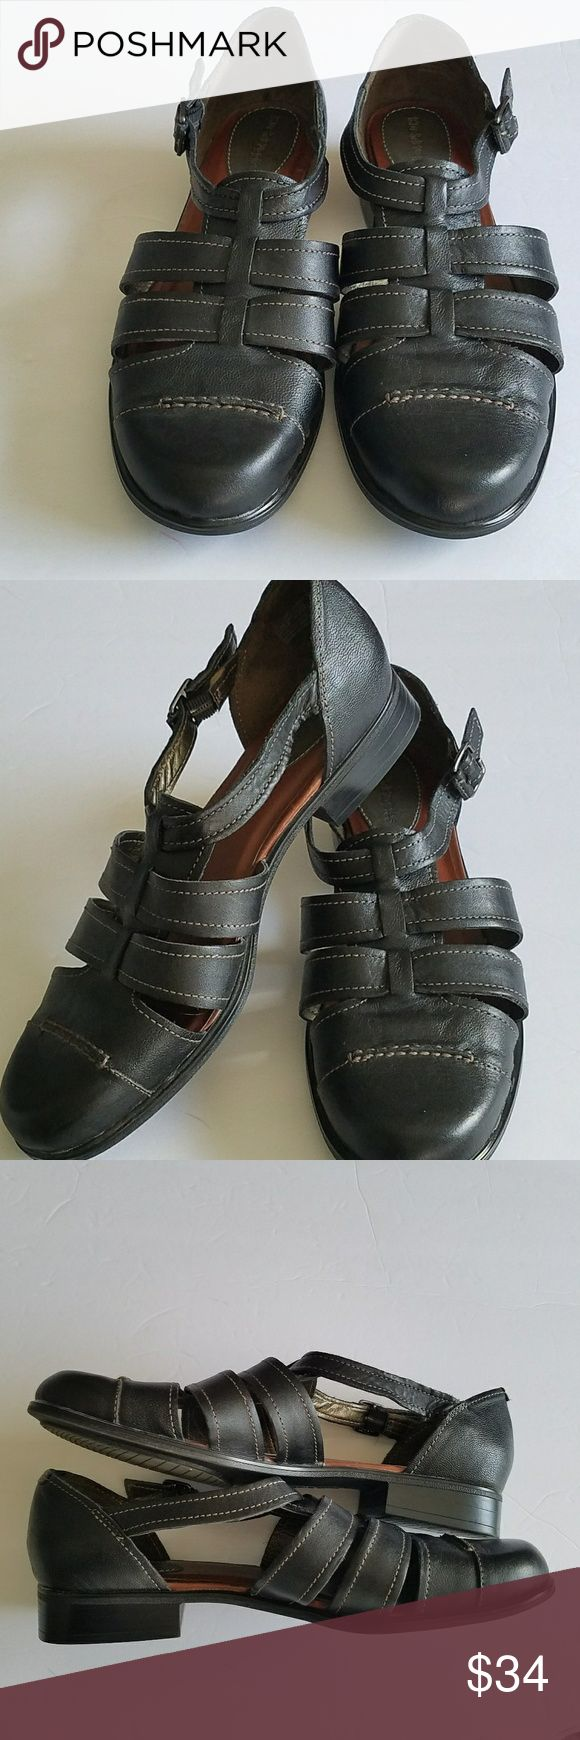 """HUSH PUPPIES BLACK STRAPPY SANDALS 10 M HUSH PUPPIES NWOT BLACK STRAPPY SANDALS with a closed toe - A fashion classic and appropiate for work or casual wear. Size 10 medium. 1.5"""" heel. All measurements are approximate and taken flat. Hush Puppies Shoes Sandals"""